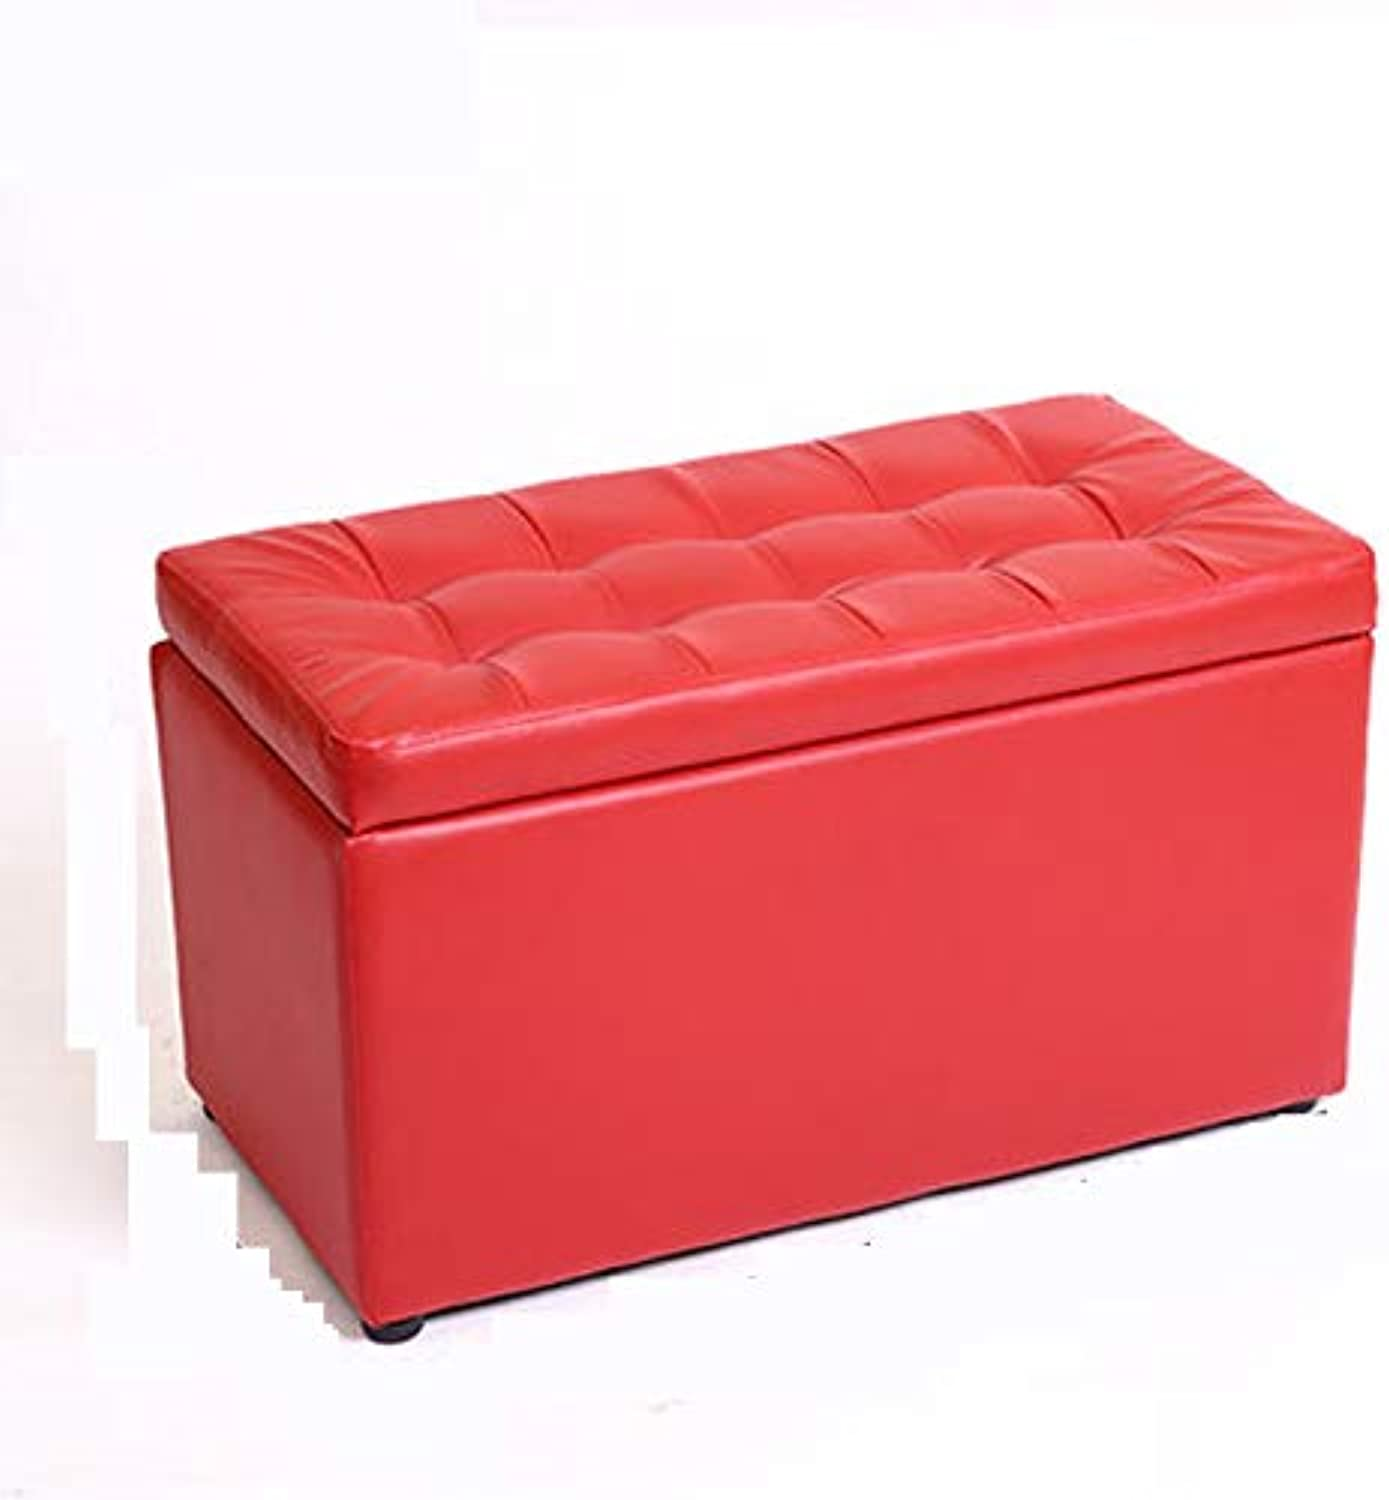 SYFO Household Solid Wood Stool, Stylish Sofa Bench, Creative Bed End Stool, Creative Bed End Stool Stool (color   Red)